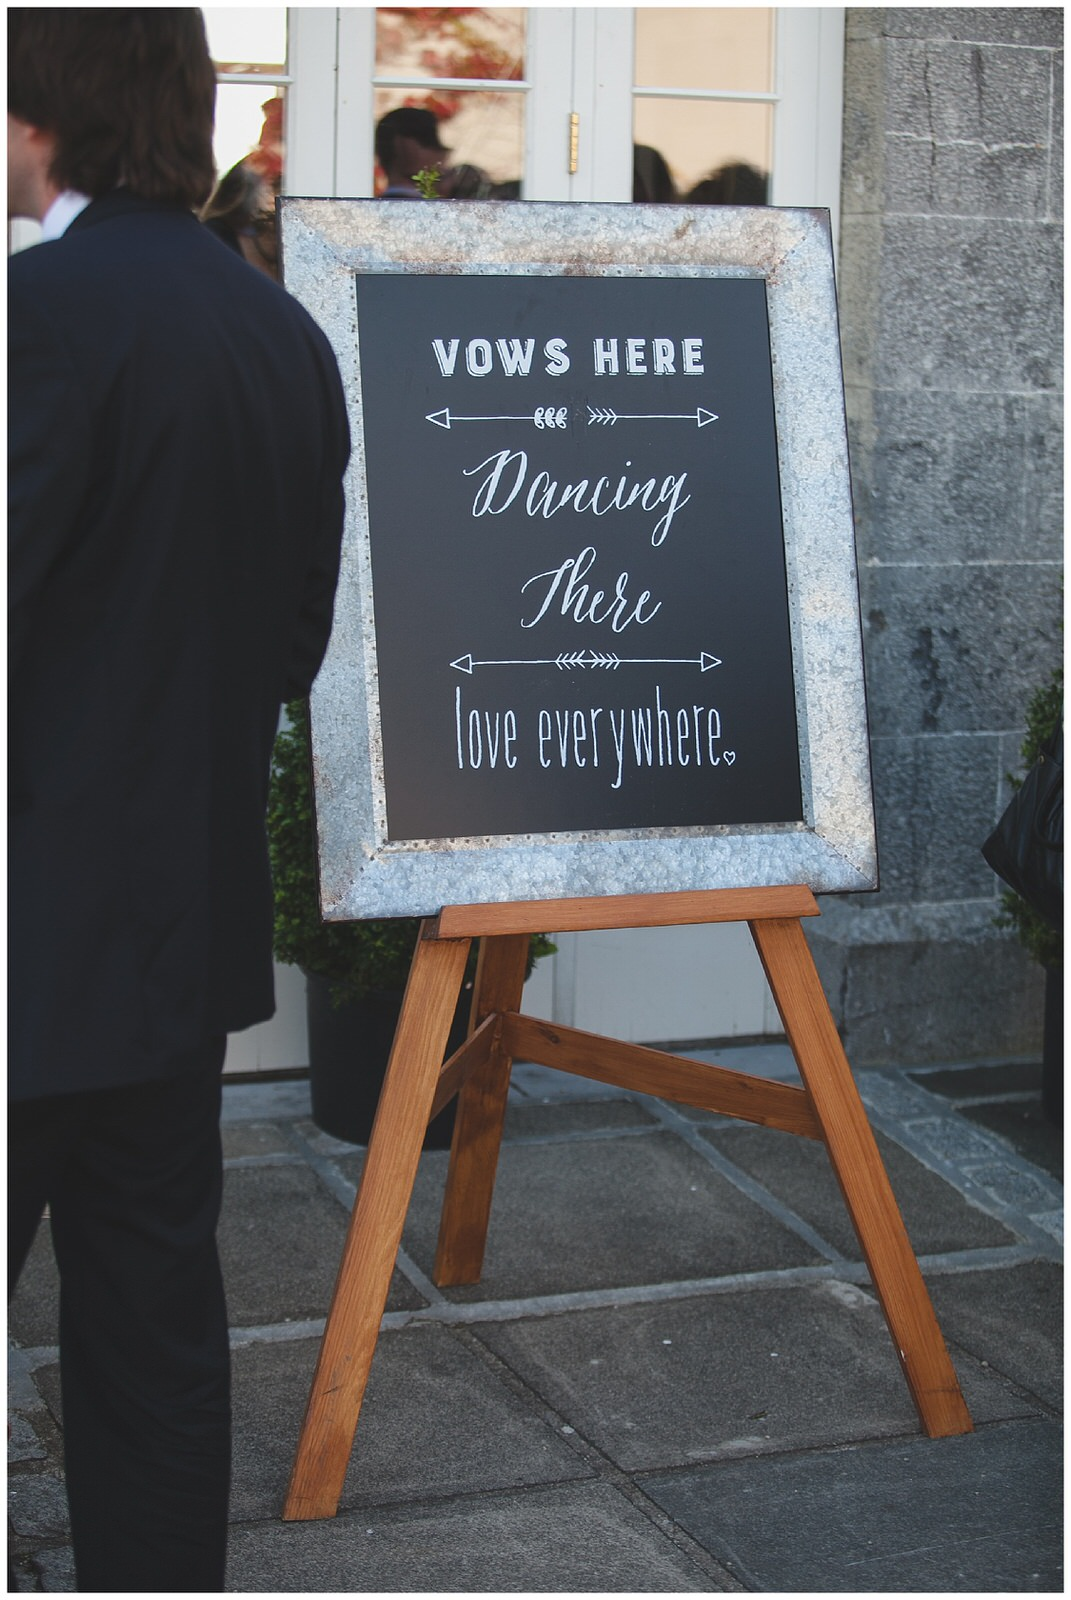 Cute wedding sign - Vows here, dancing there, love everywhere !